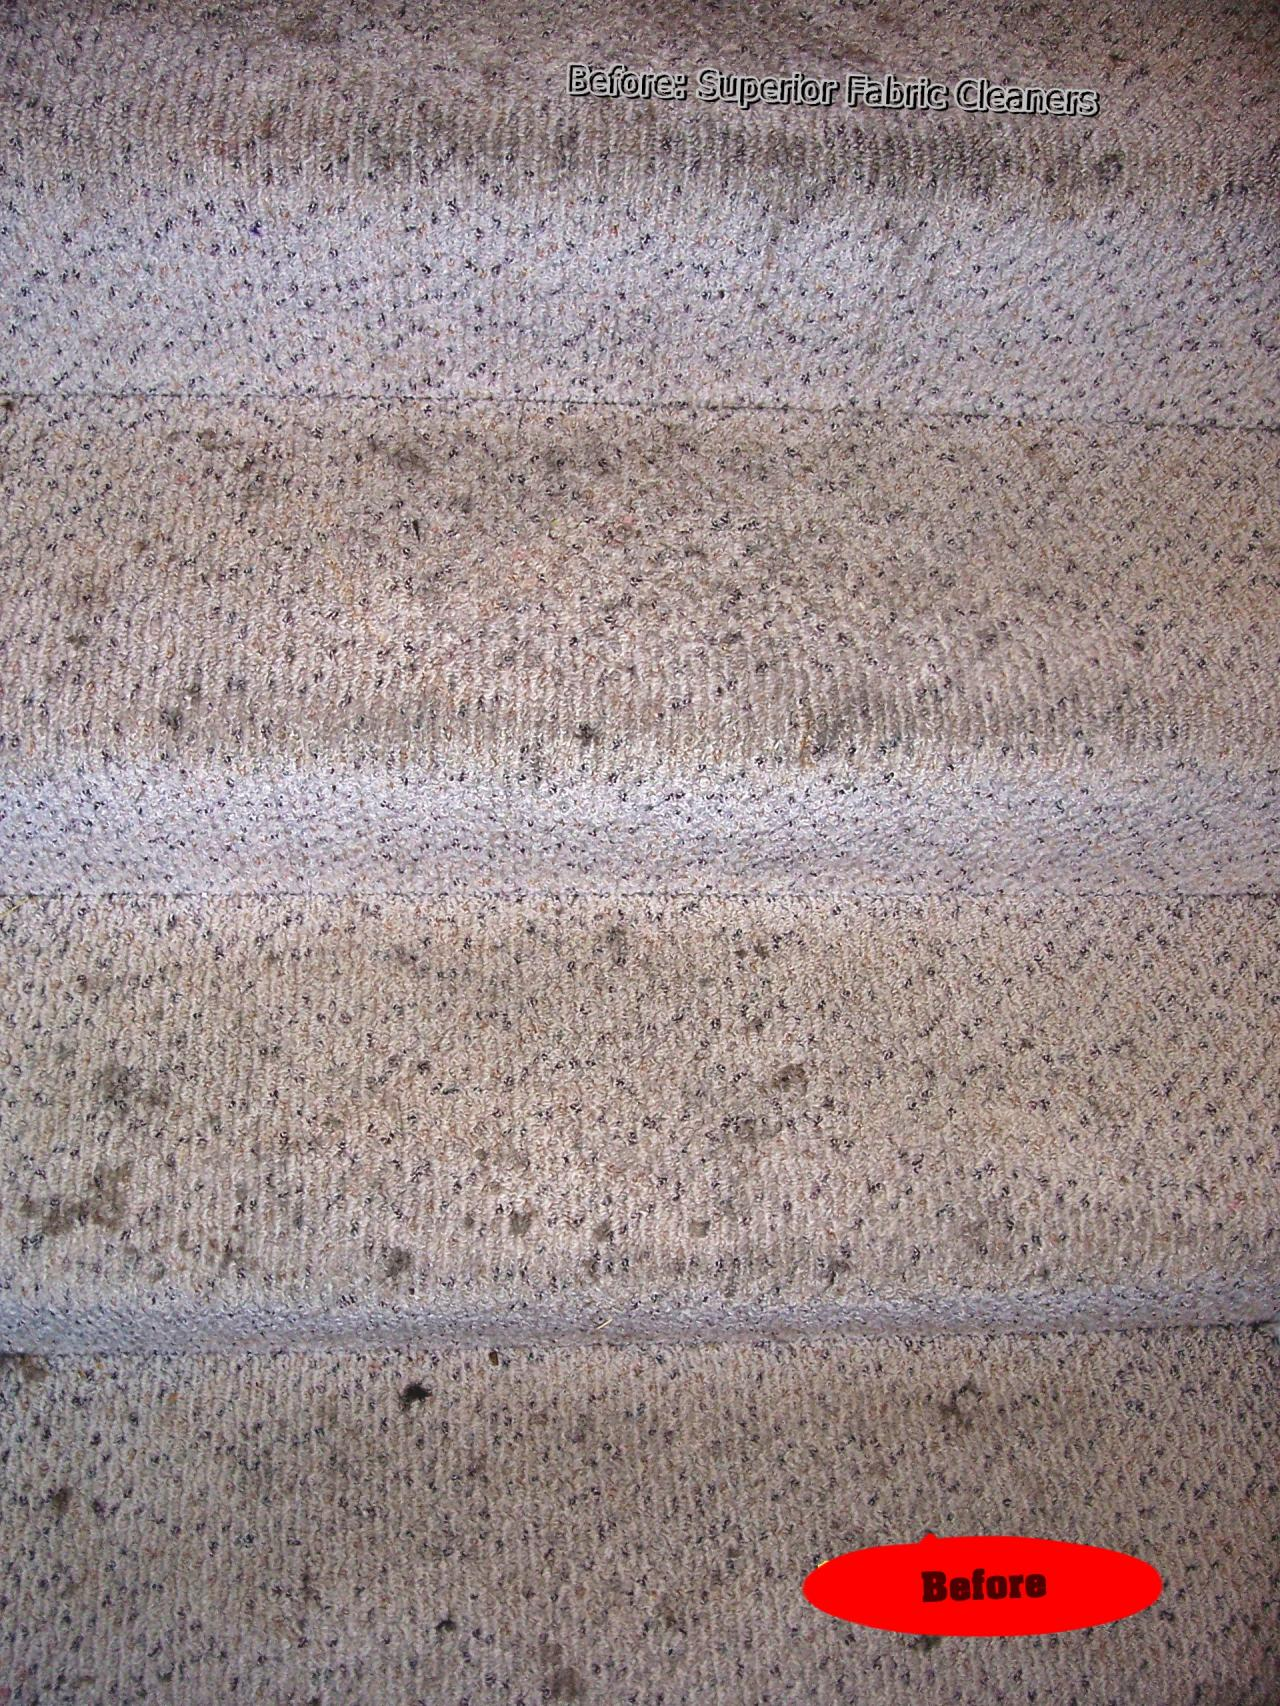 Extremely dirty black oil stained Berber Carpet Stairs Before Cleaning Photo